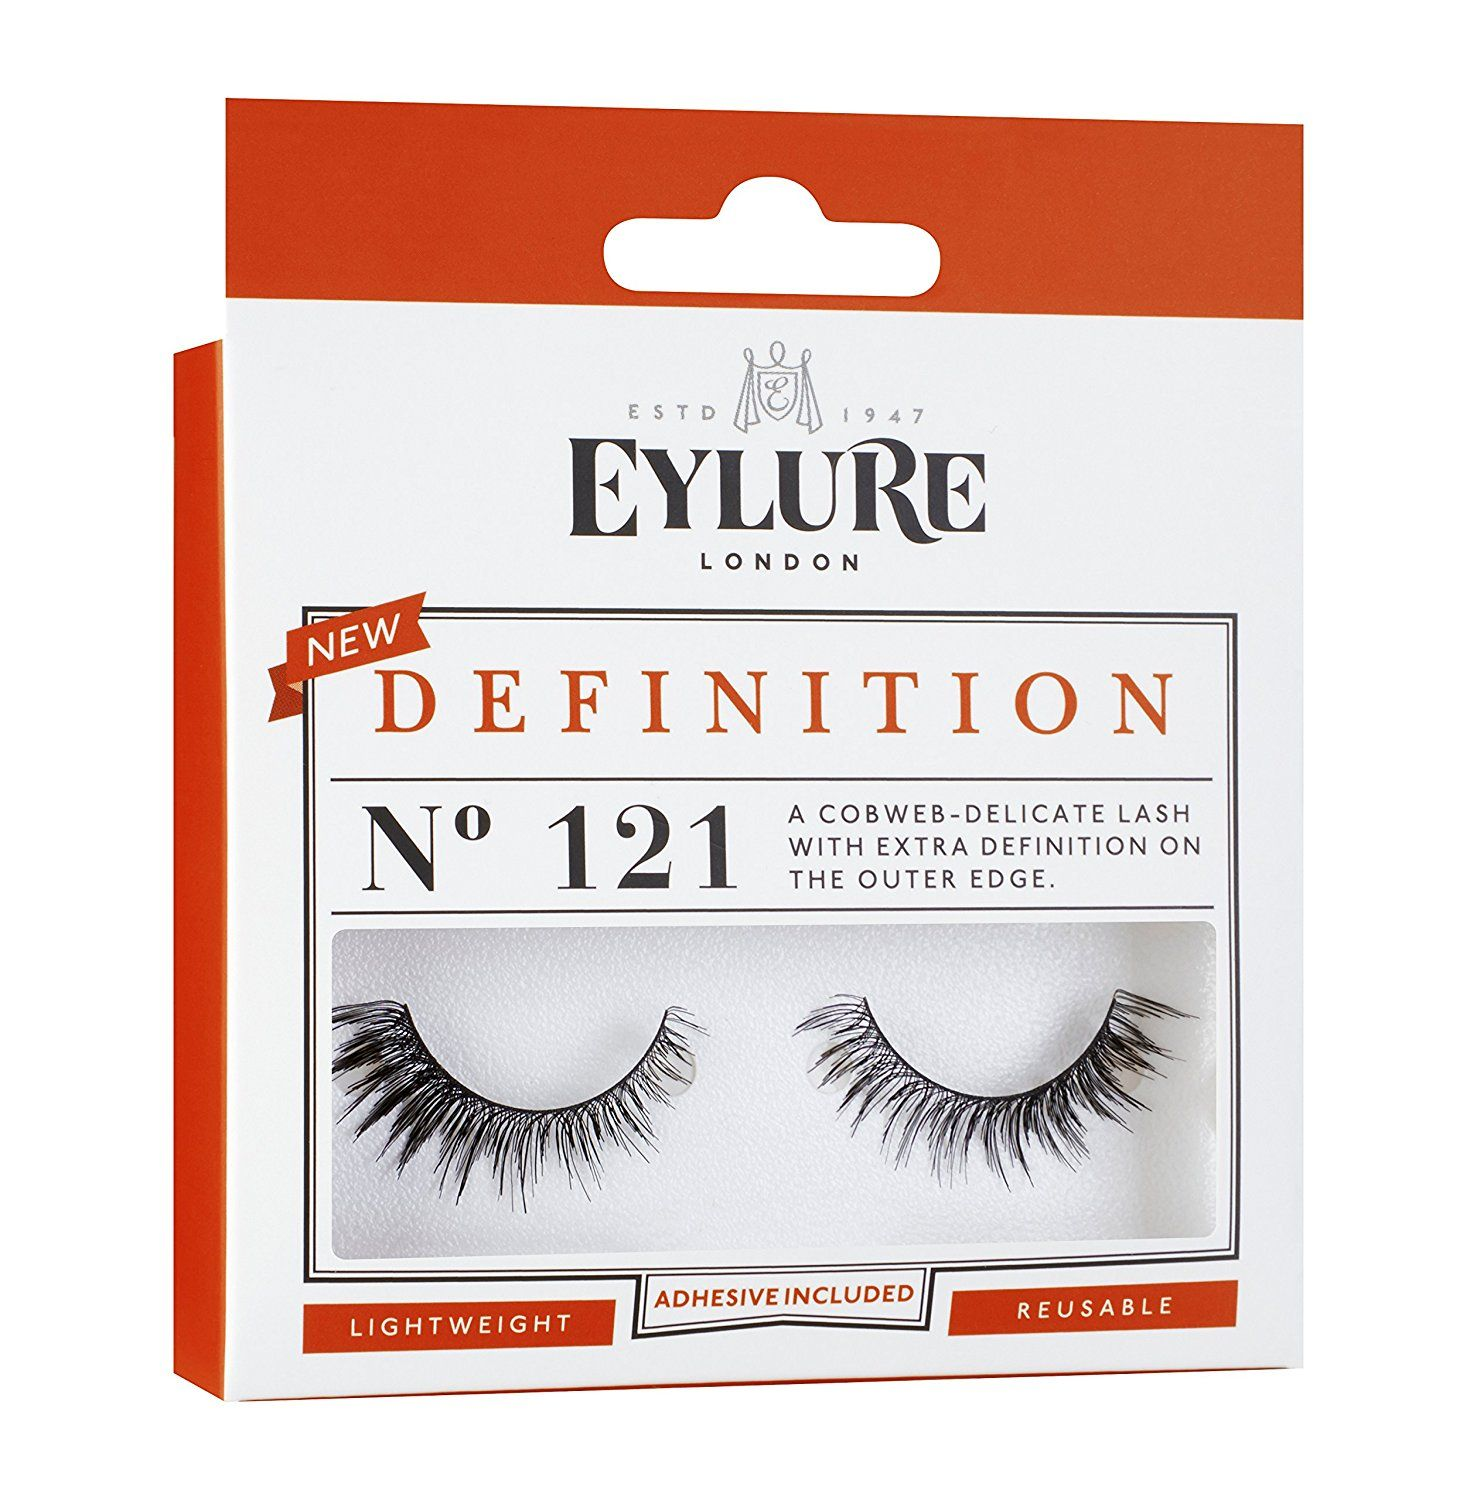 9d368ca6321 Eylure Strip Lashes Definition Number 121: Amazon.co.uk: Beauty ...